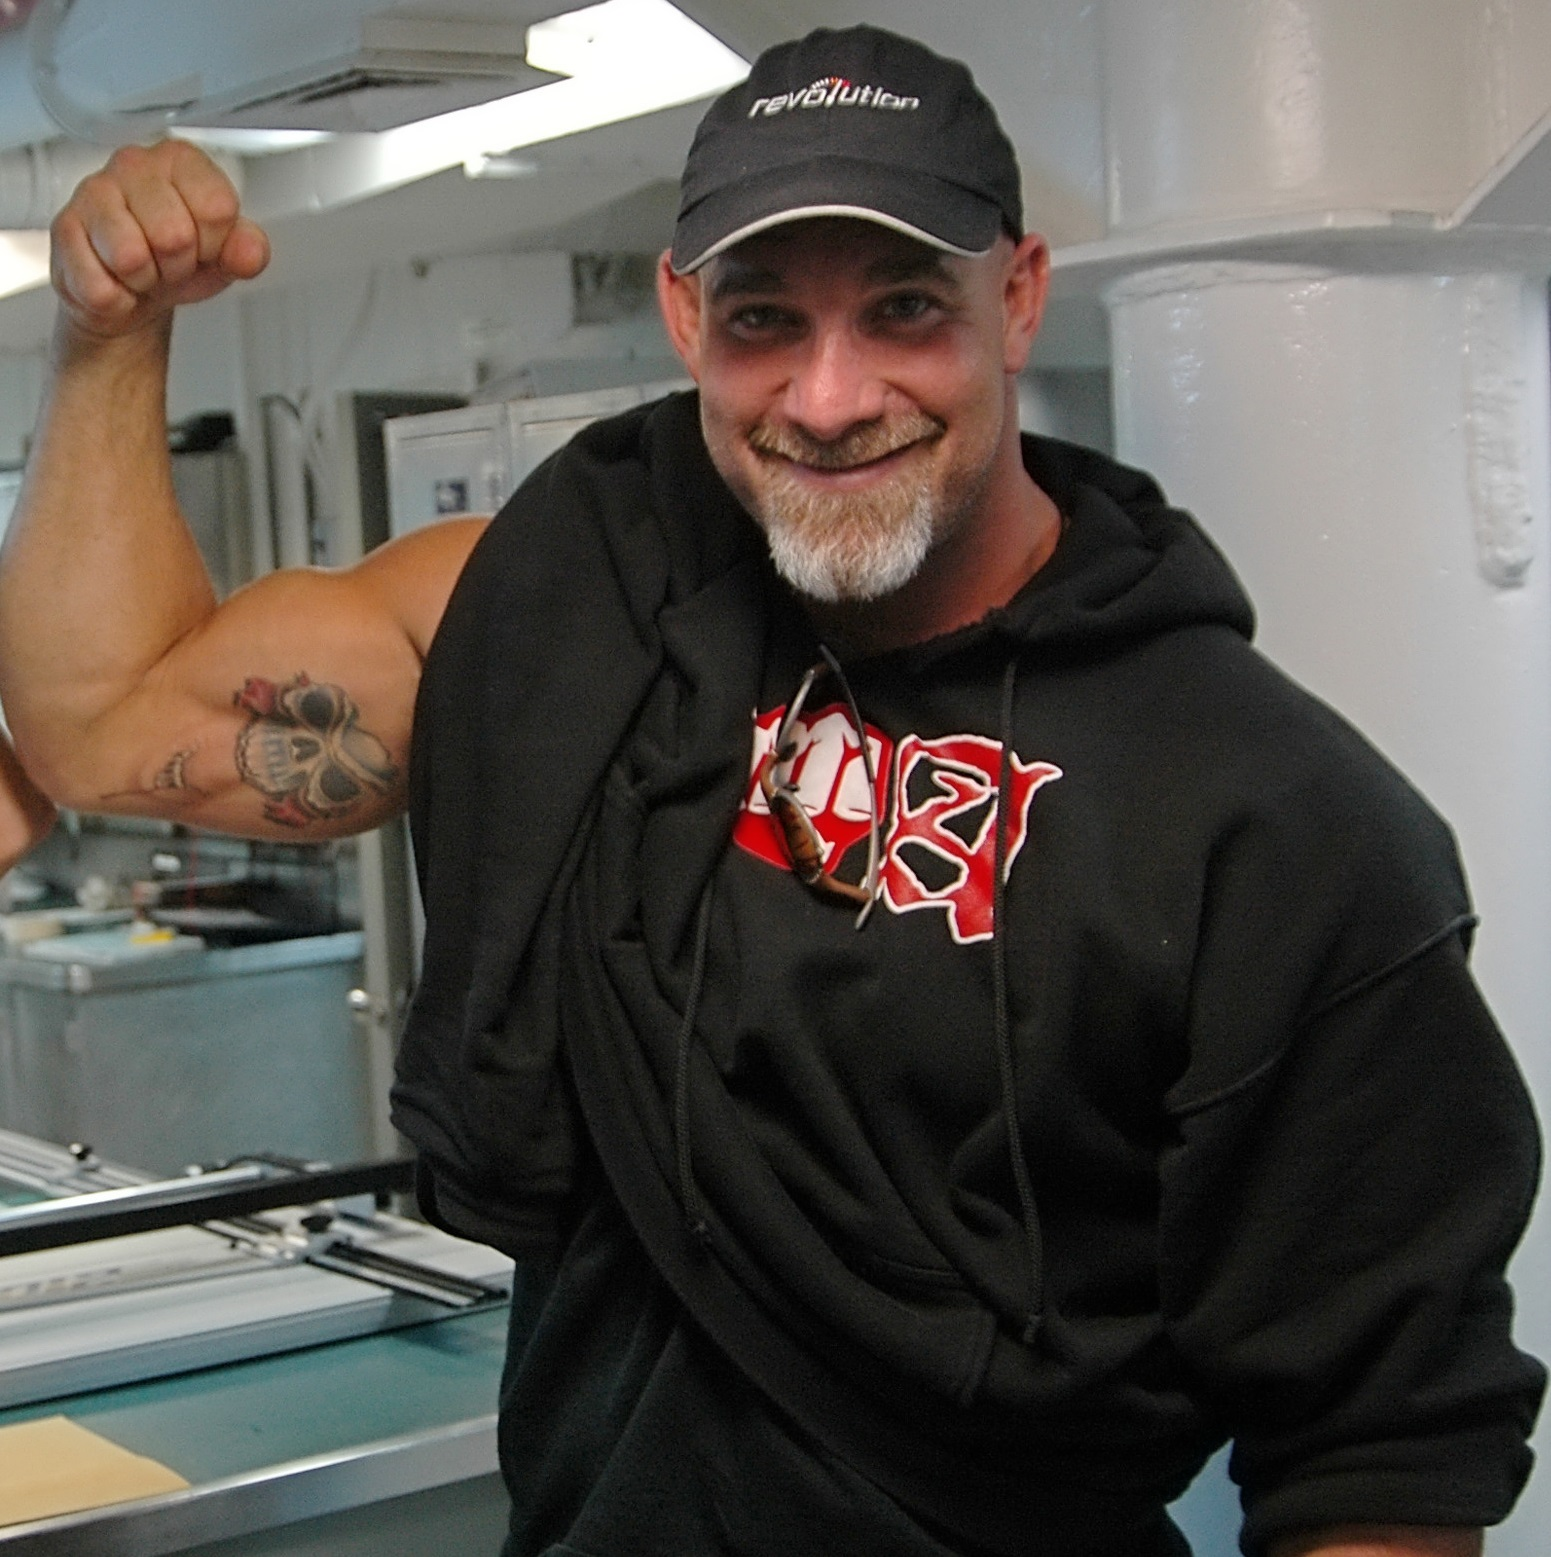 Bill Goldberg Family Photos, Wife, Son, Age, Height